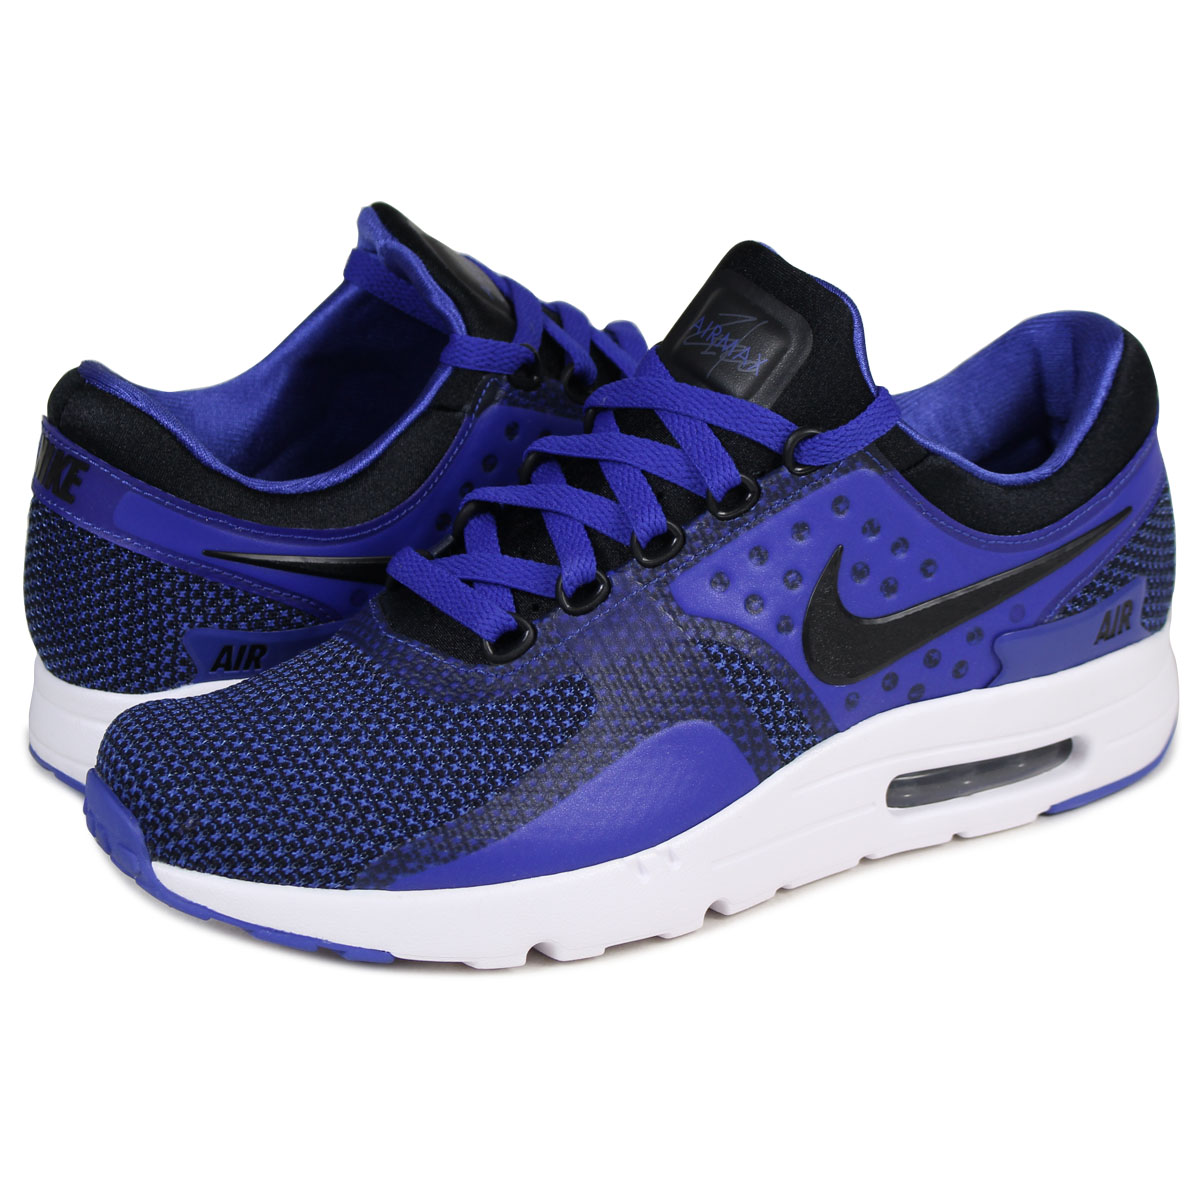 a8890ea183 ... low price whats up sports rakuten global market nike air max zero  essential kie ney amax